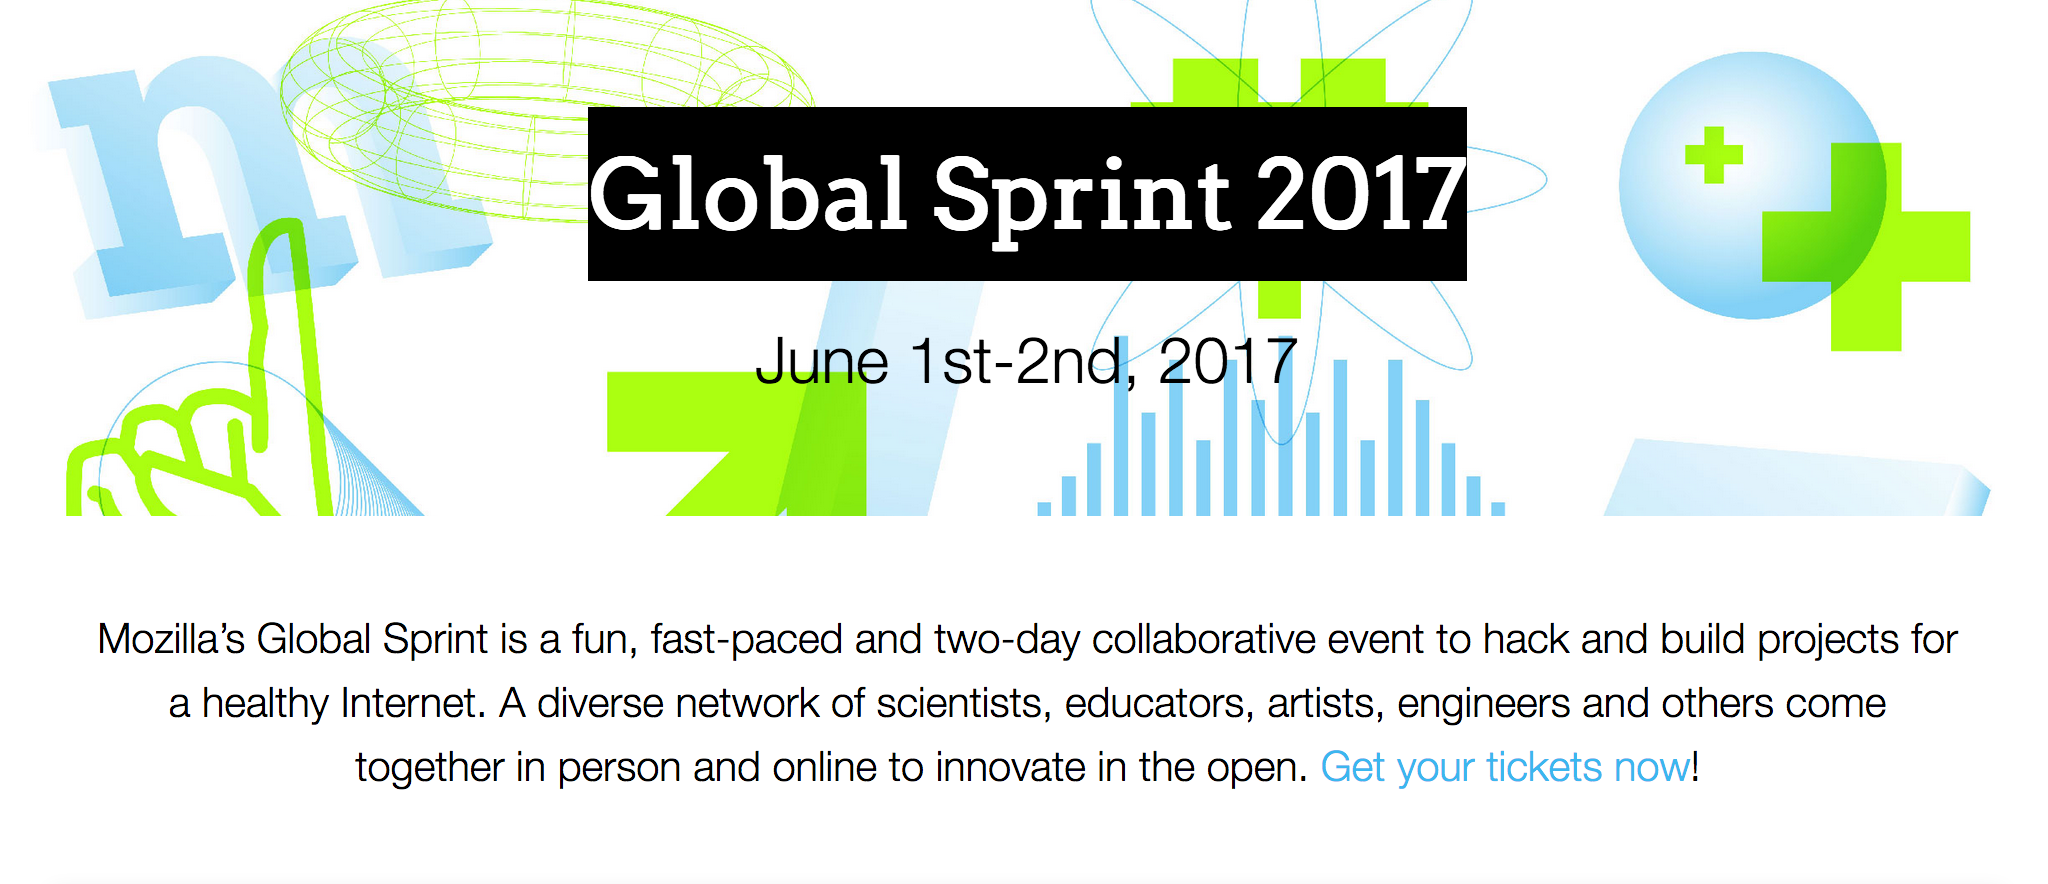 Recap on Mozilla Global Sprint